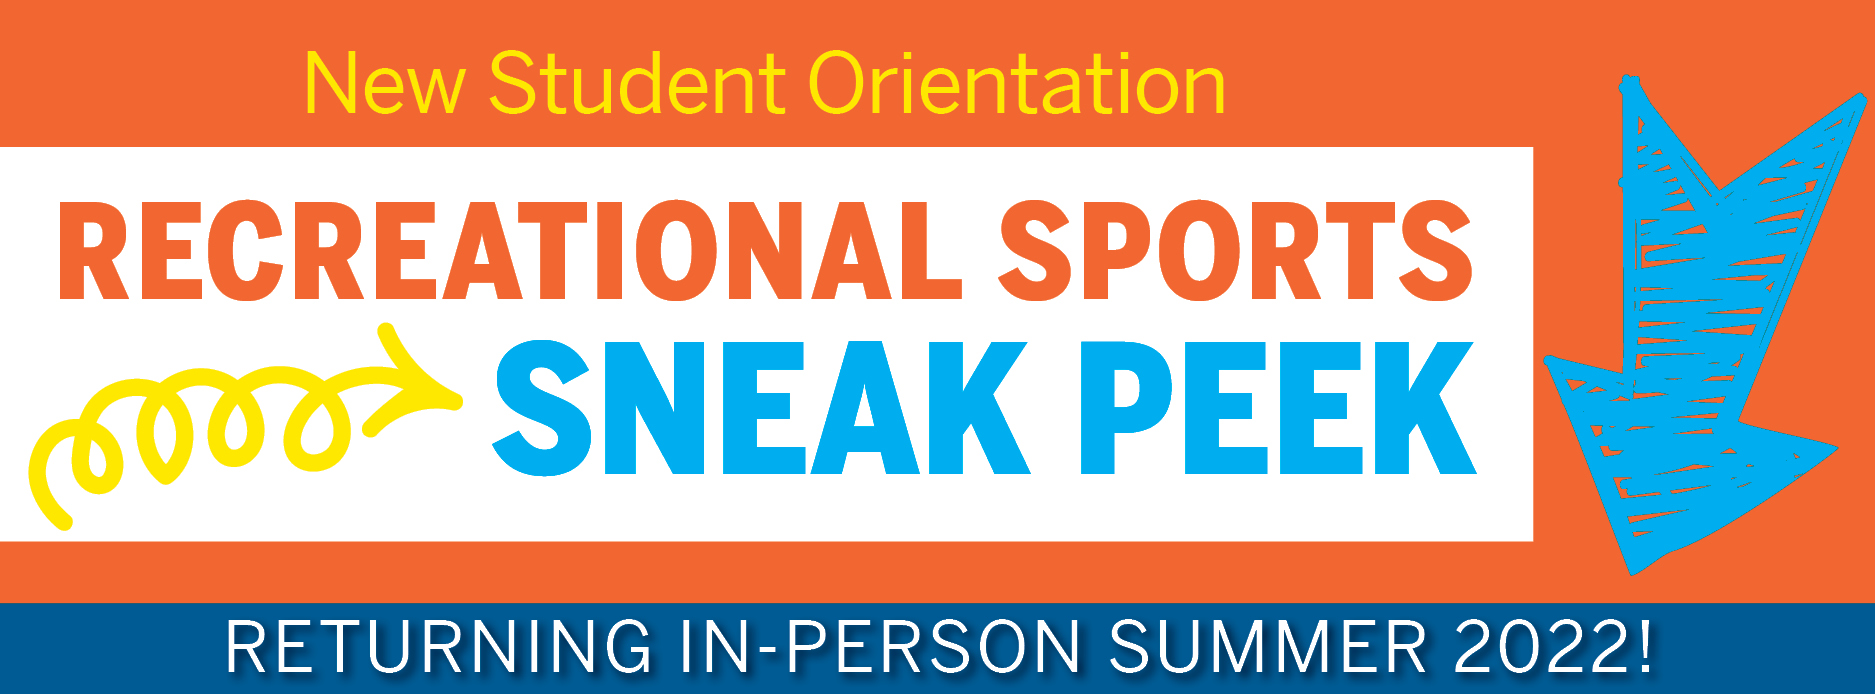 New Student Orientation Recreational Sports Sneak Peek Returning Summer 2021